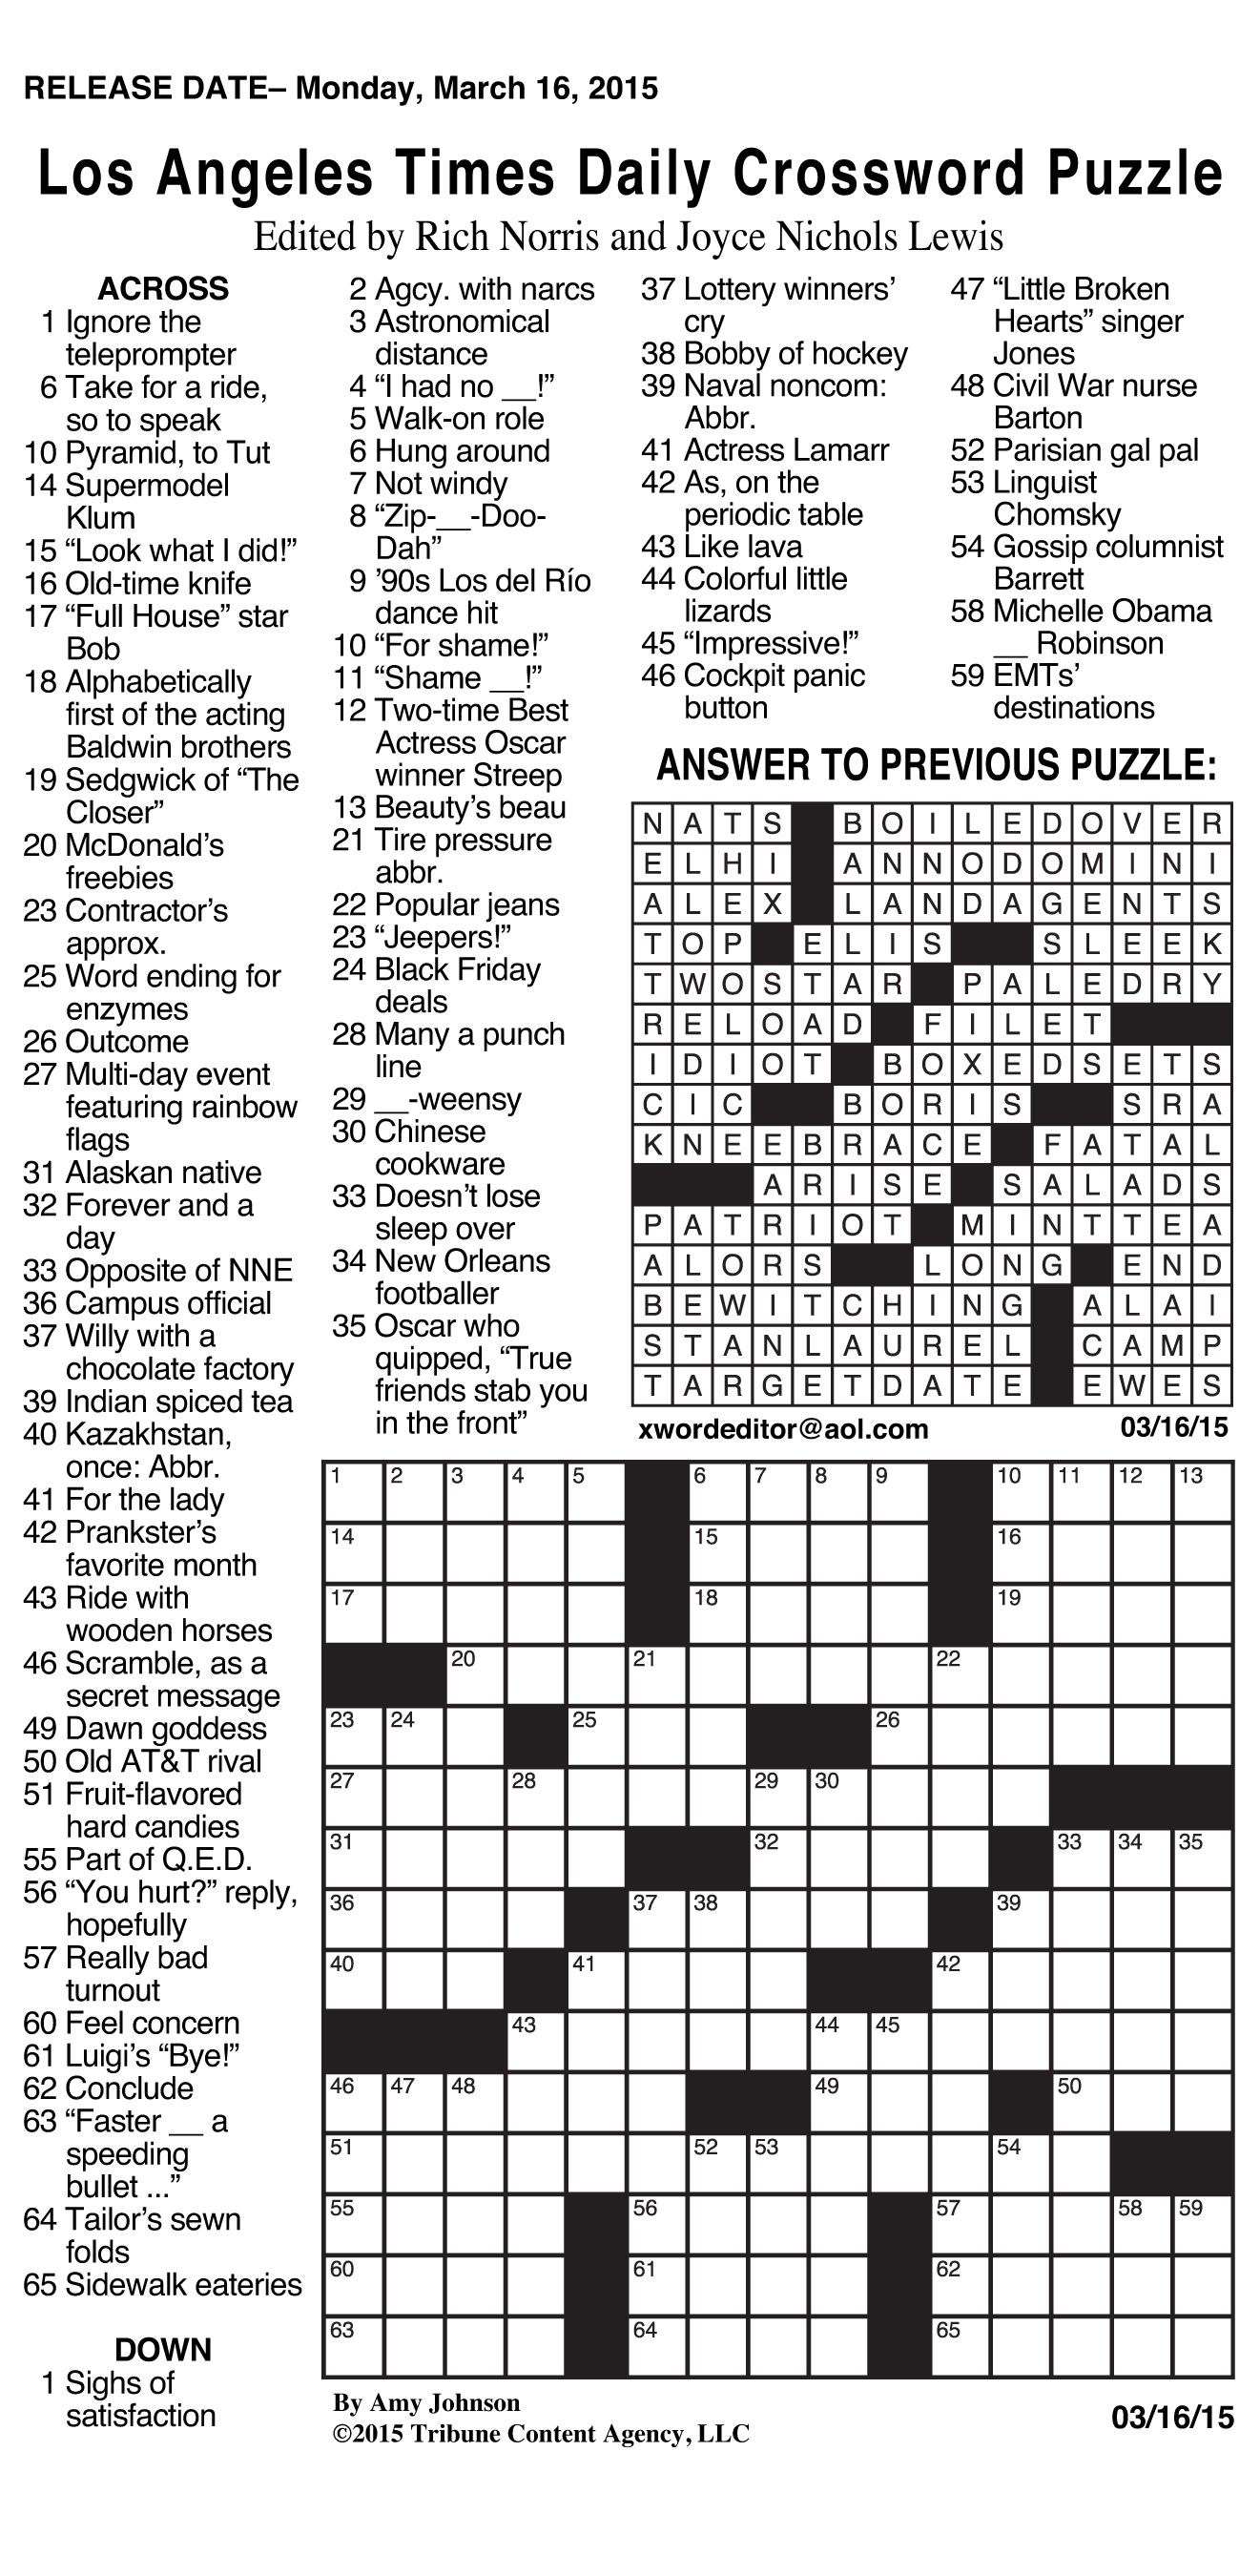 photo about Printable Crossword Puzzles La Times called Crosswords Sunday Crossword Puzzle Printable